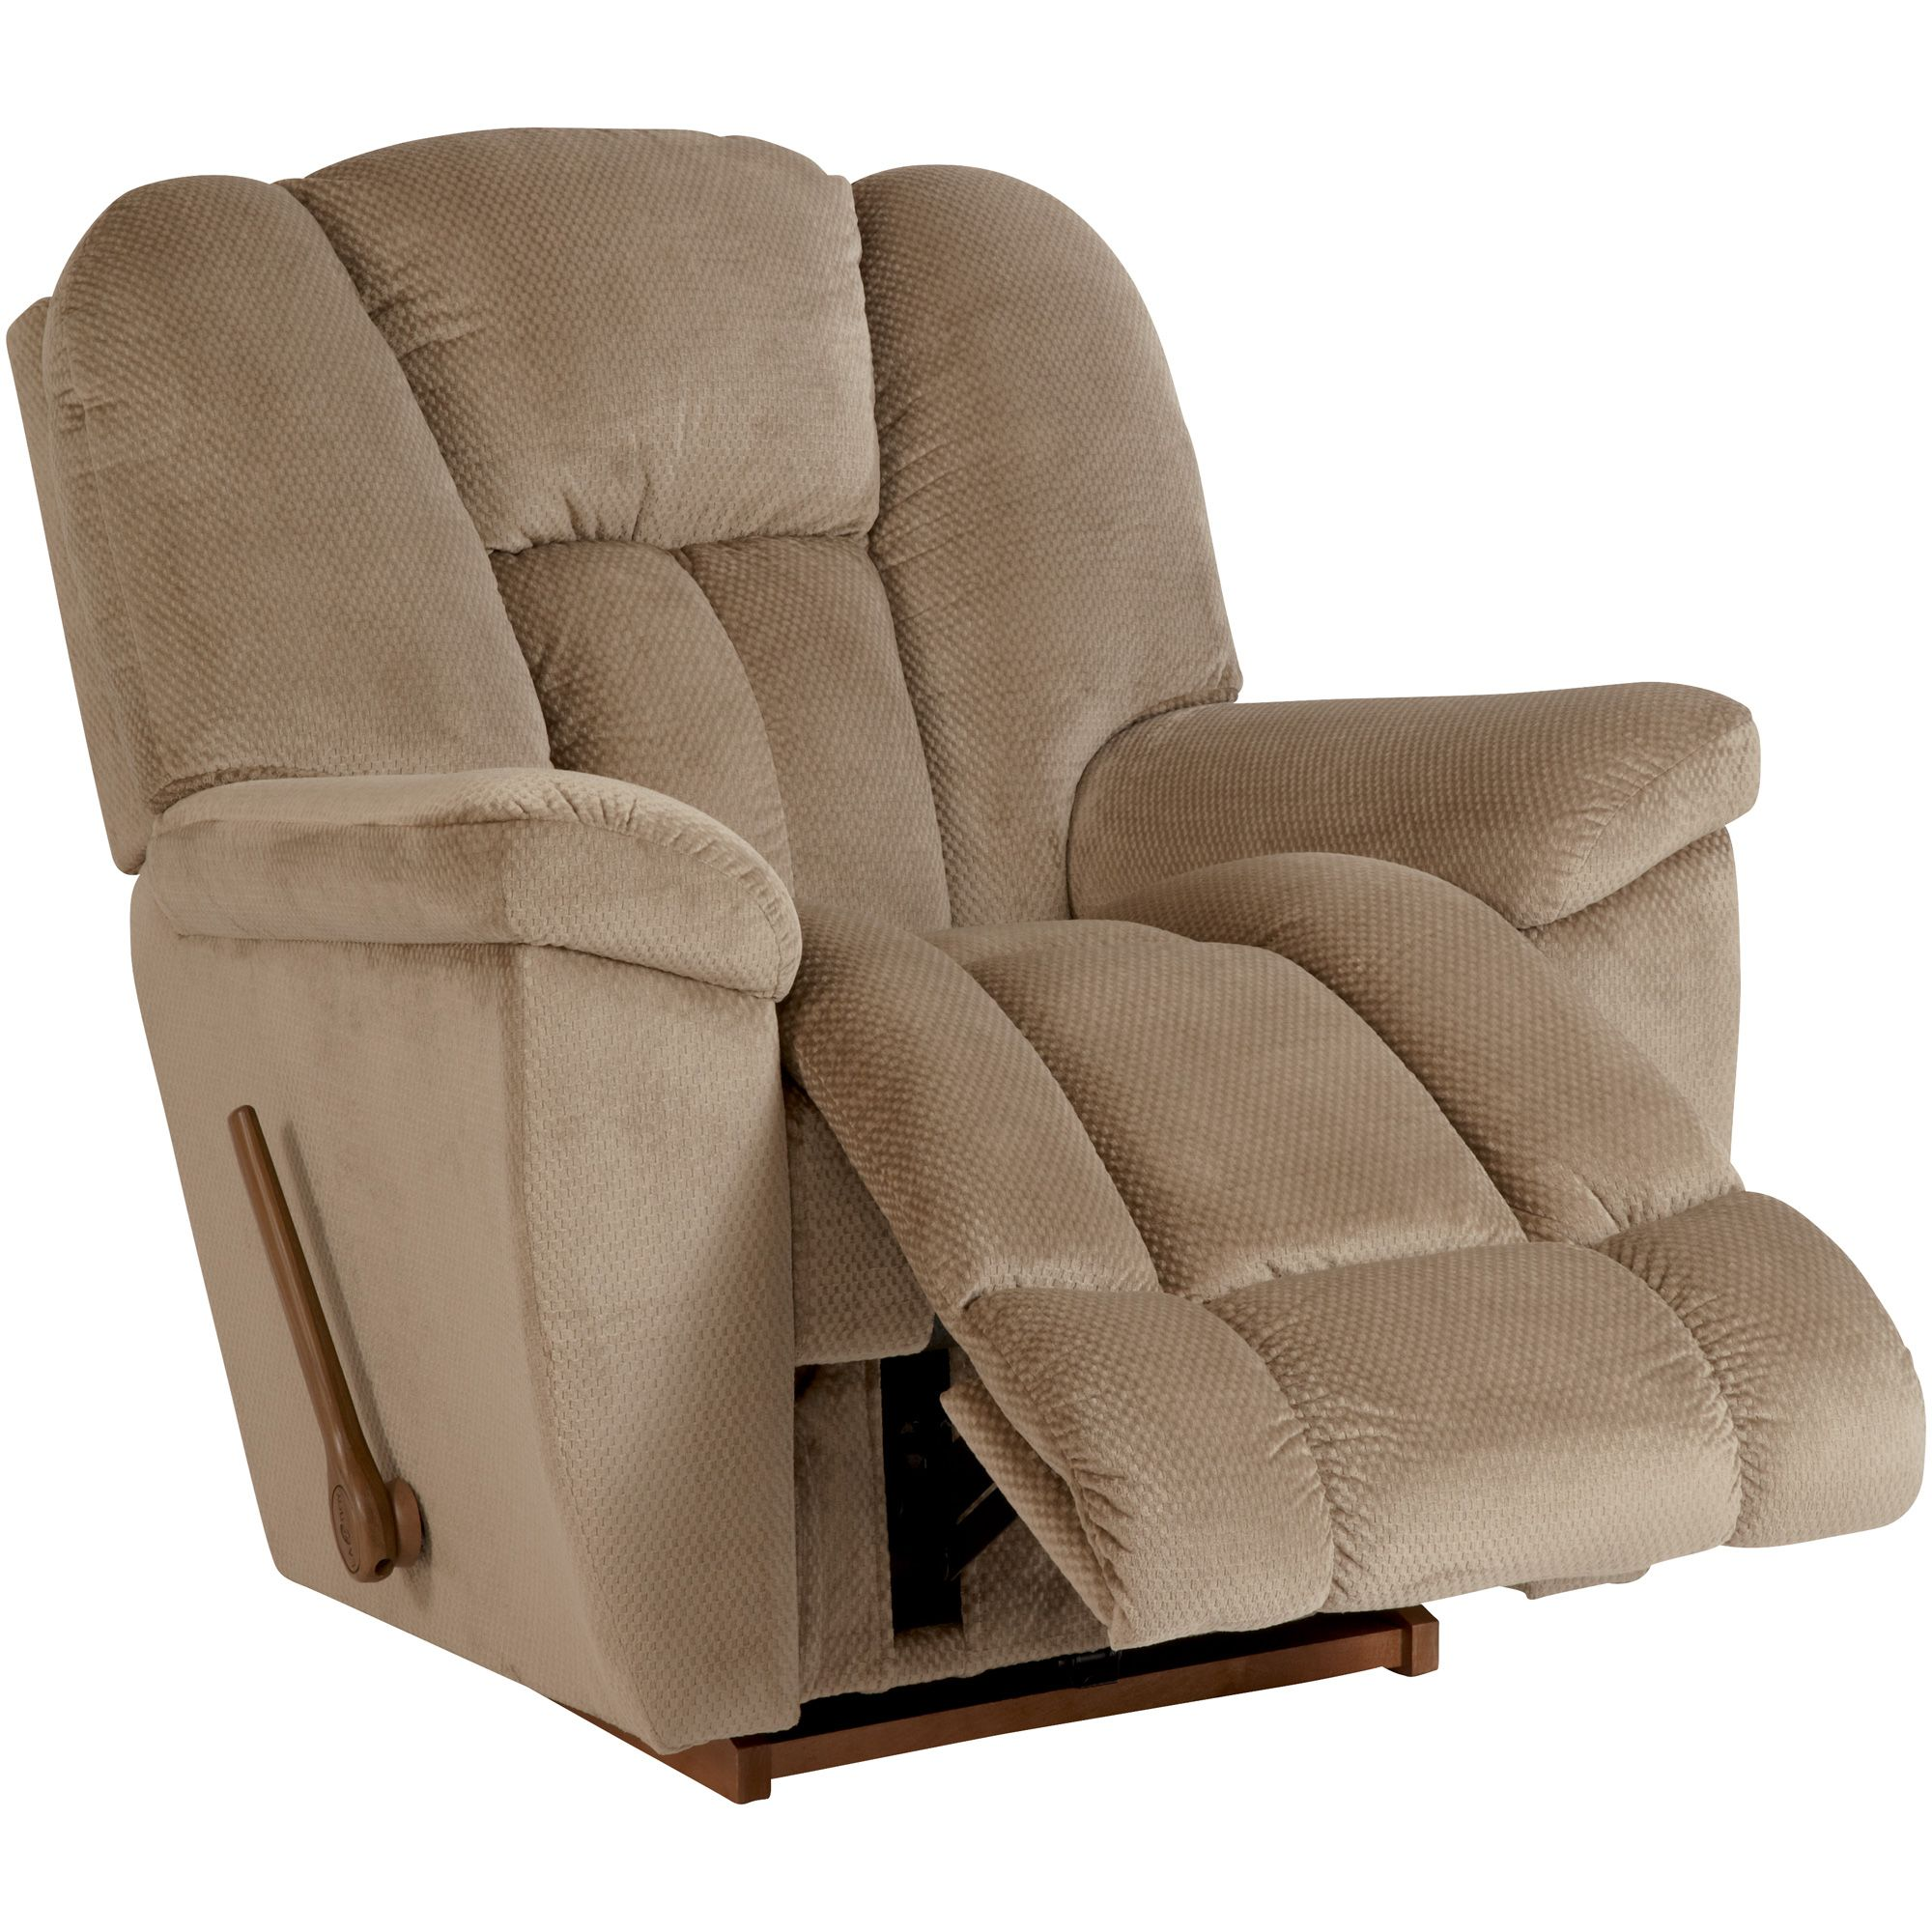 Maverick Cafe Rocker Recliner | Lazy boy chair, Lazy boy